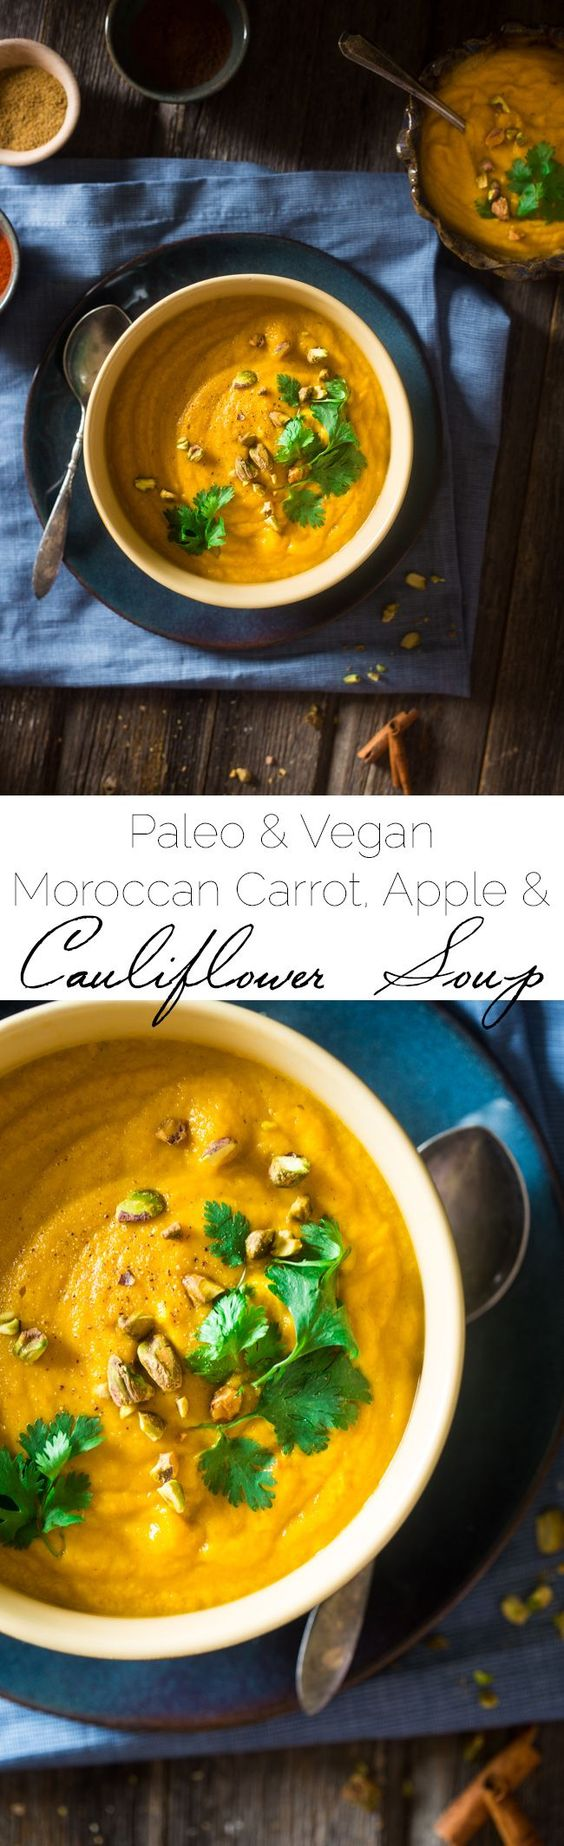 Apple, Carrot and Pistachio Cauliflower Soup - This easy, healthy soup ...